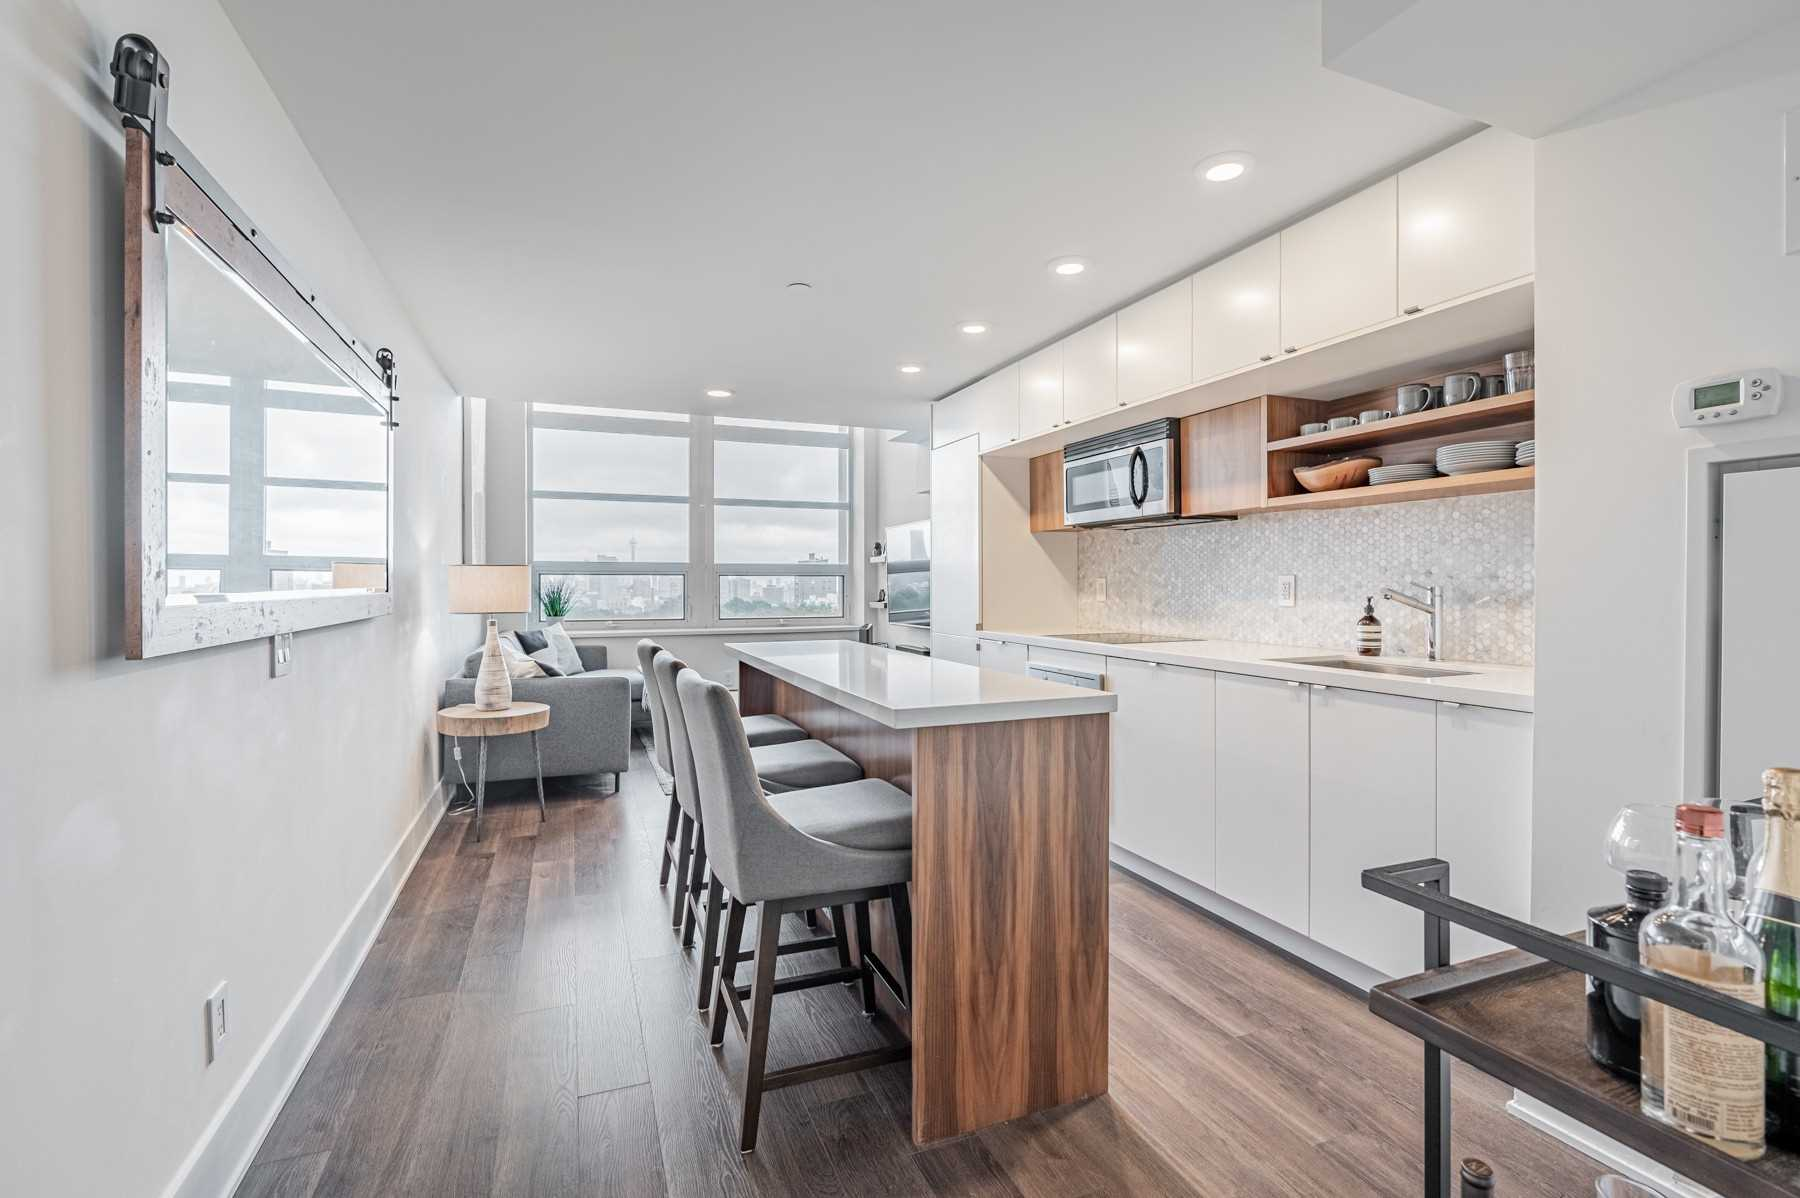 814 - 111 St Clair Ave W - Yonge-St. Clair Condo Apt for sale, 1 Bedroom (C5409381) - #1